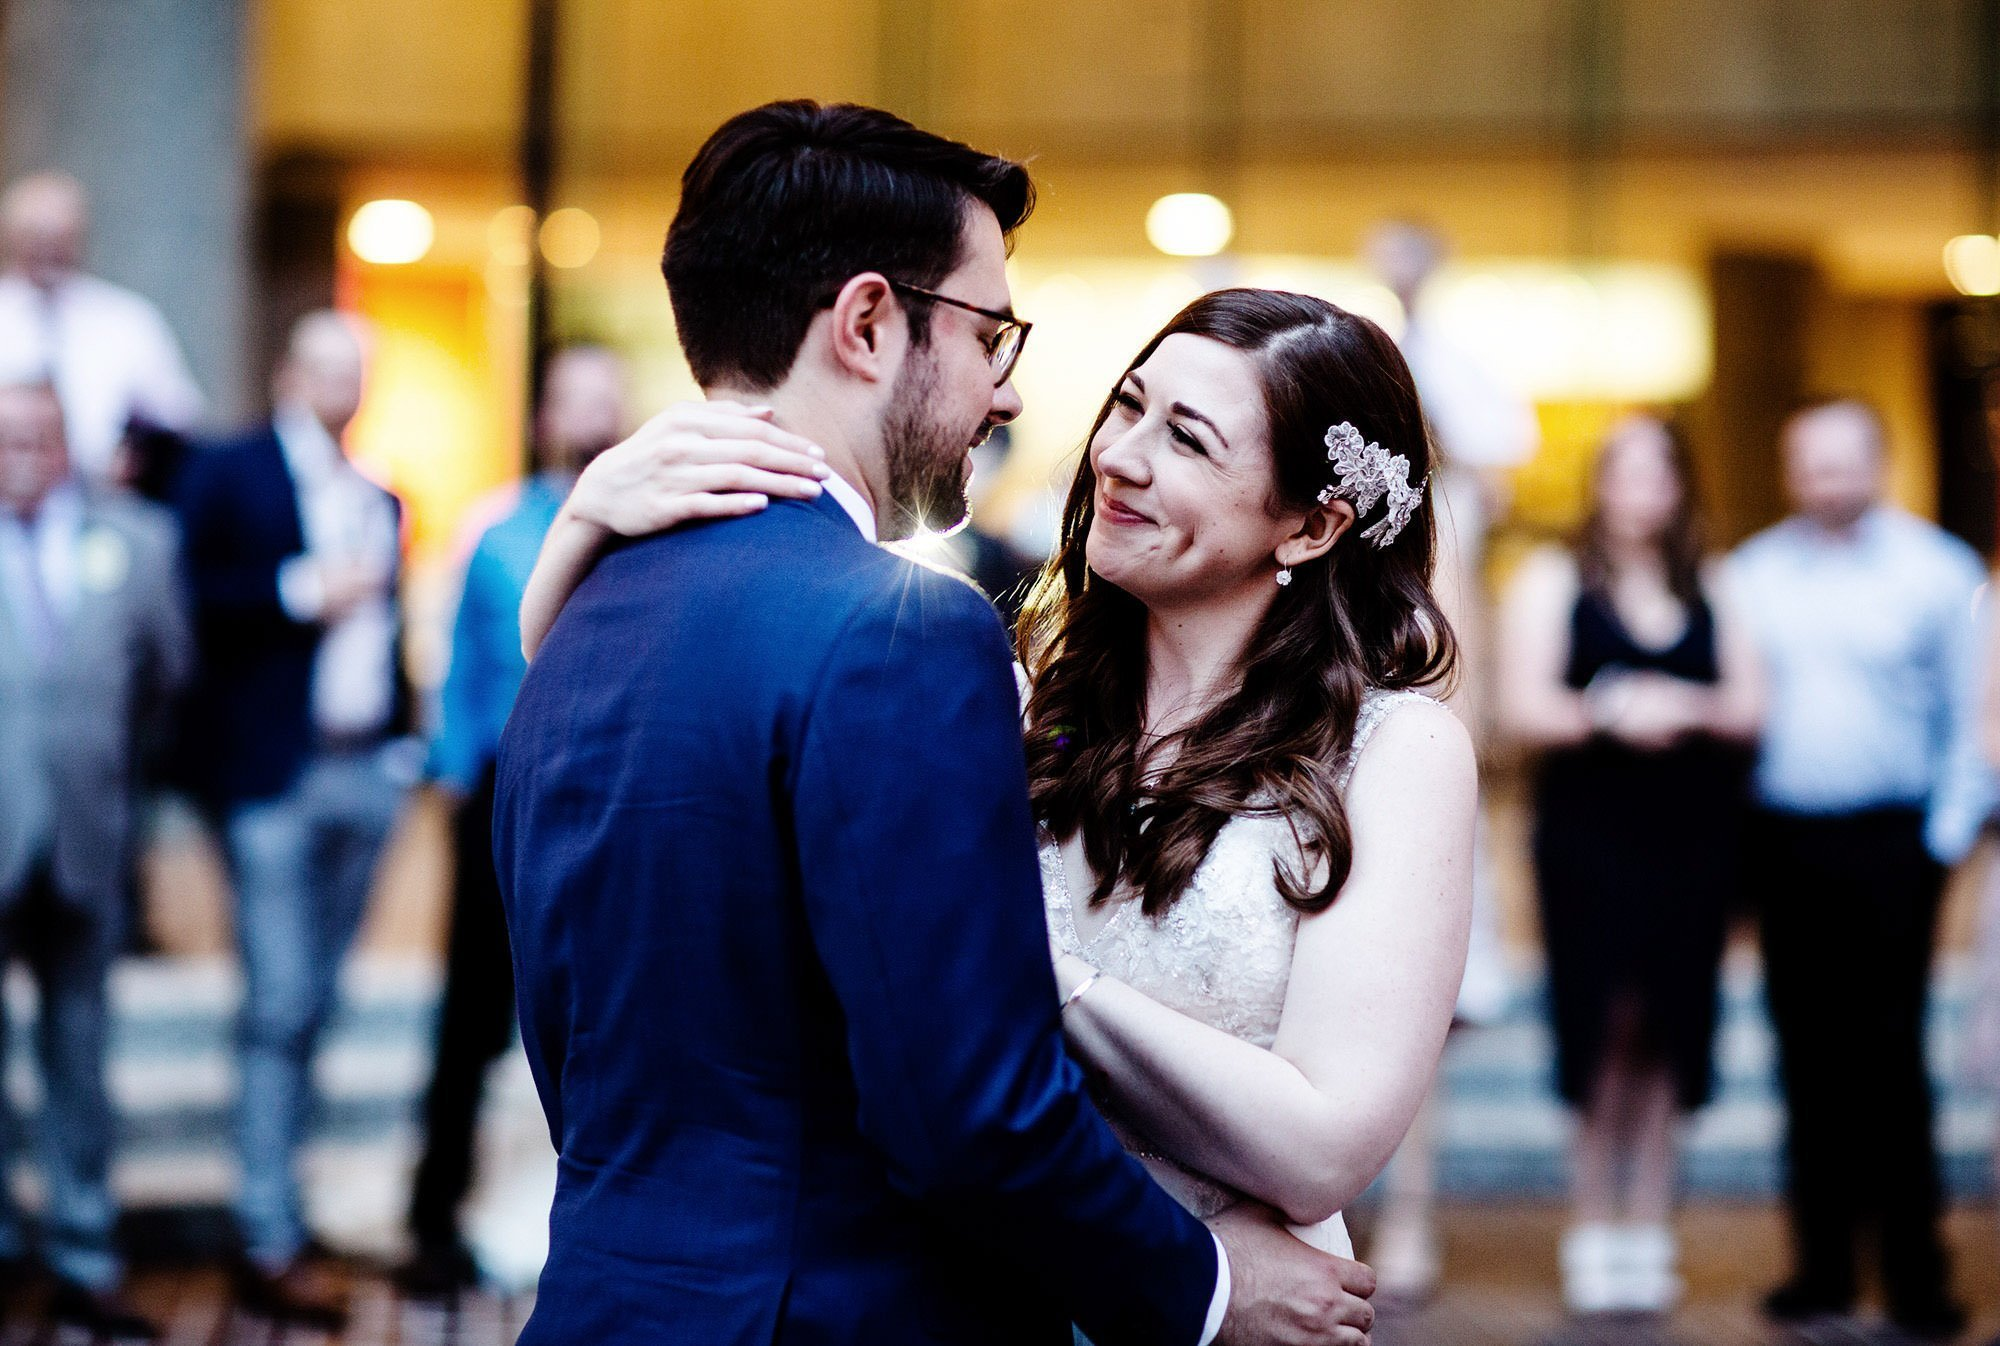 The bride and groom share their first dance on their American Institute of Architects Wedding day.